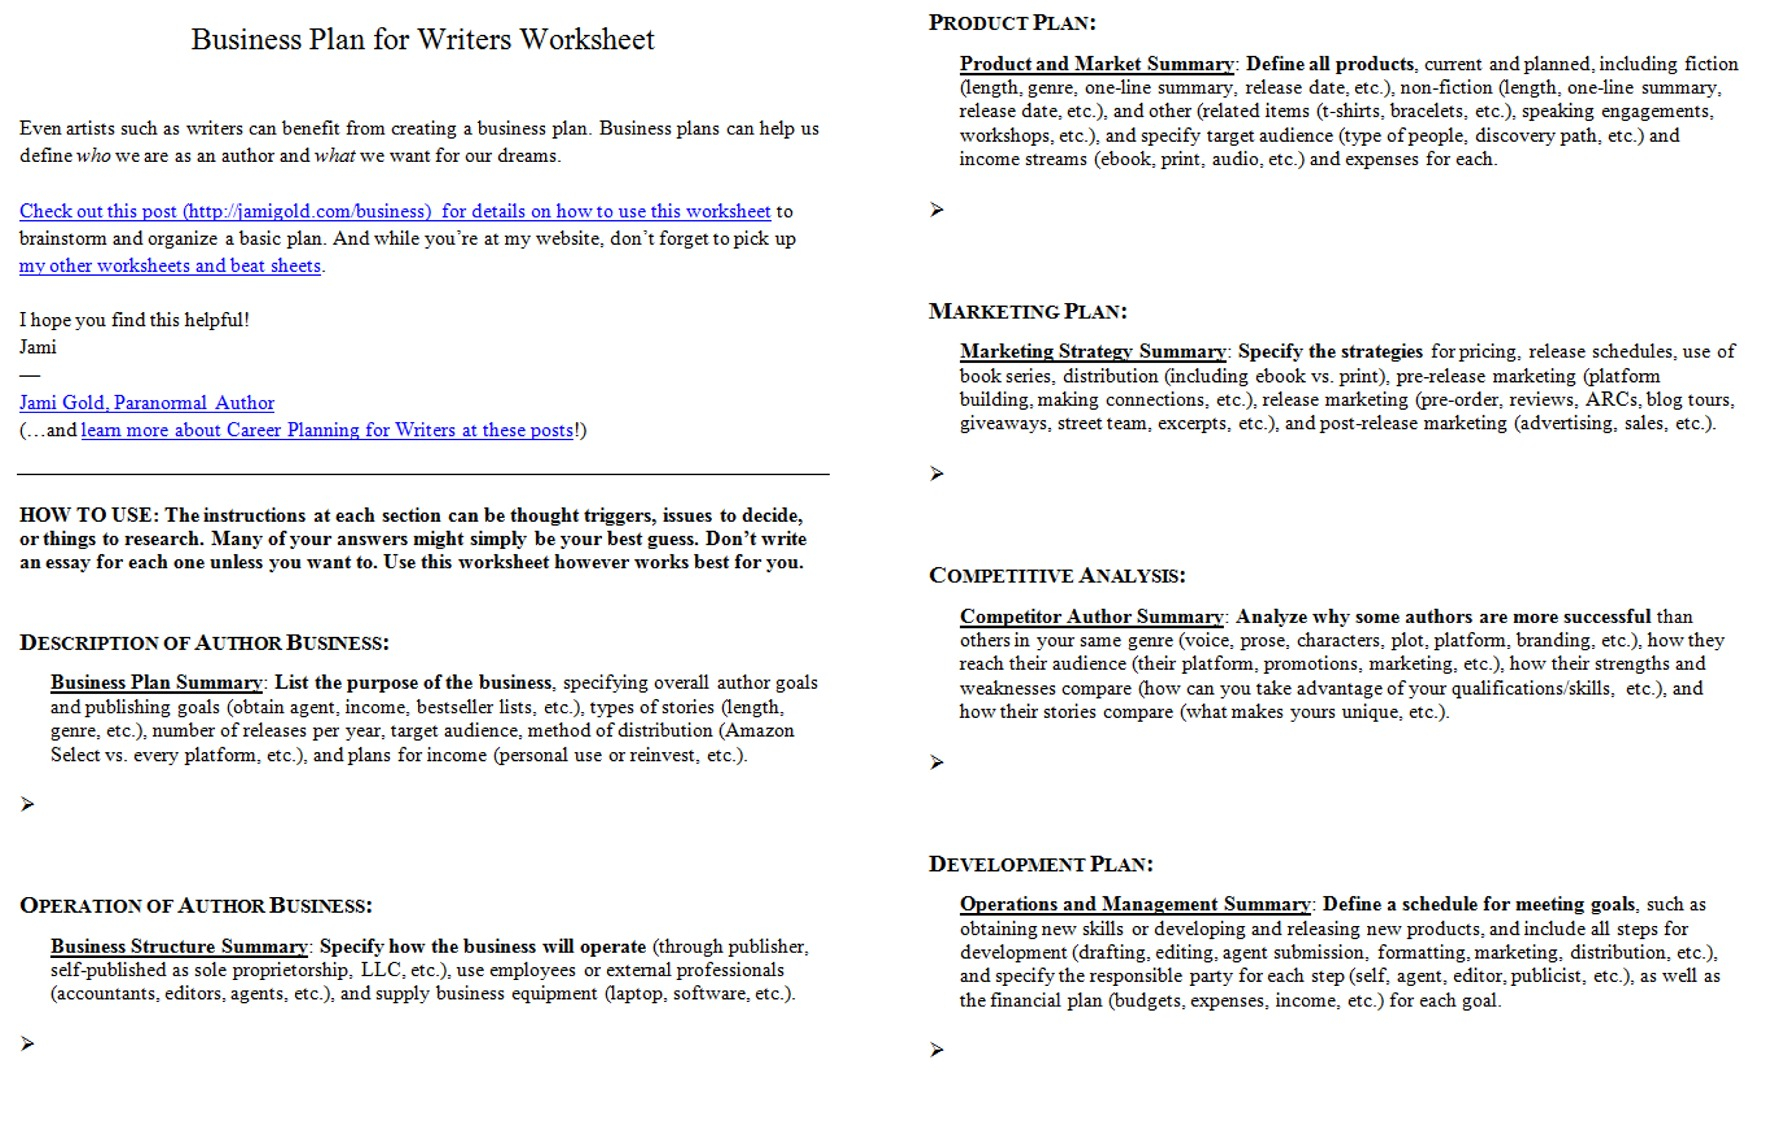 Weirdmailus  Mesmerizing Worksheets For Writers  Jami Gold Paranormal Author With Goodlooking Screen Shot Of Both Pages Of The Business Plan For Writers Worksheet With Delightful Writing Math Expressions Worksheets Also Sentence Fragment Worksheets High School In Addition Plant Cell Label Worksheet And Animal Cell Label Worksheet As Well As Midsegments Of A Triangle Worksheet Additionally Fractions Free Worksheets From Jamigoldcom With Weirdmailus  Goodlooking Worksheets For Writers  Jami Gold Paranormal Author With Delightful Screen Shot Of Both Pages Of The Business Plan For Writers Worksheet And Mesmerizing Writing Math Expressions Worksheets Also Sentence Fragment Worksheets High School In Addition Plant Cell Label Worksheet From Jamigoldcom